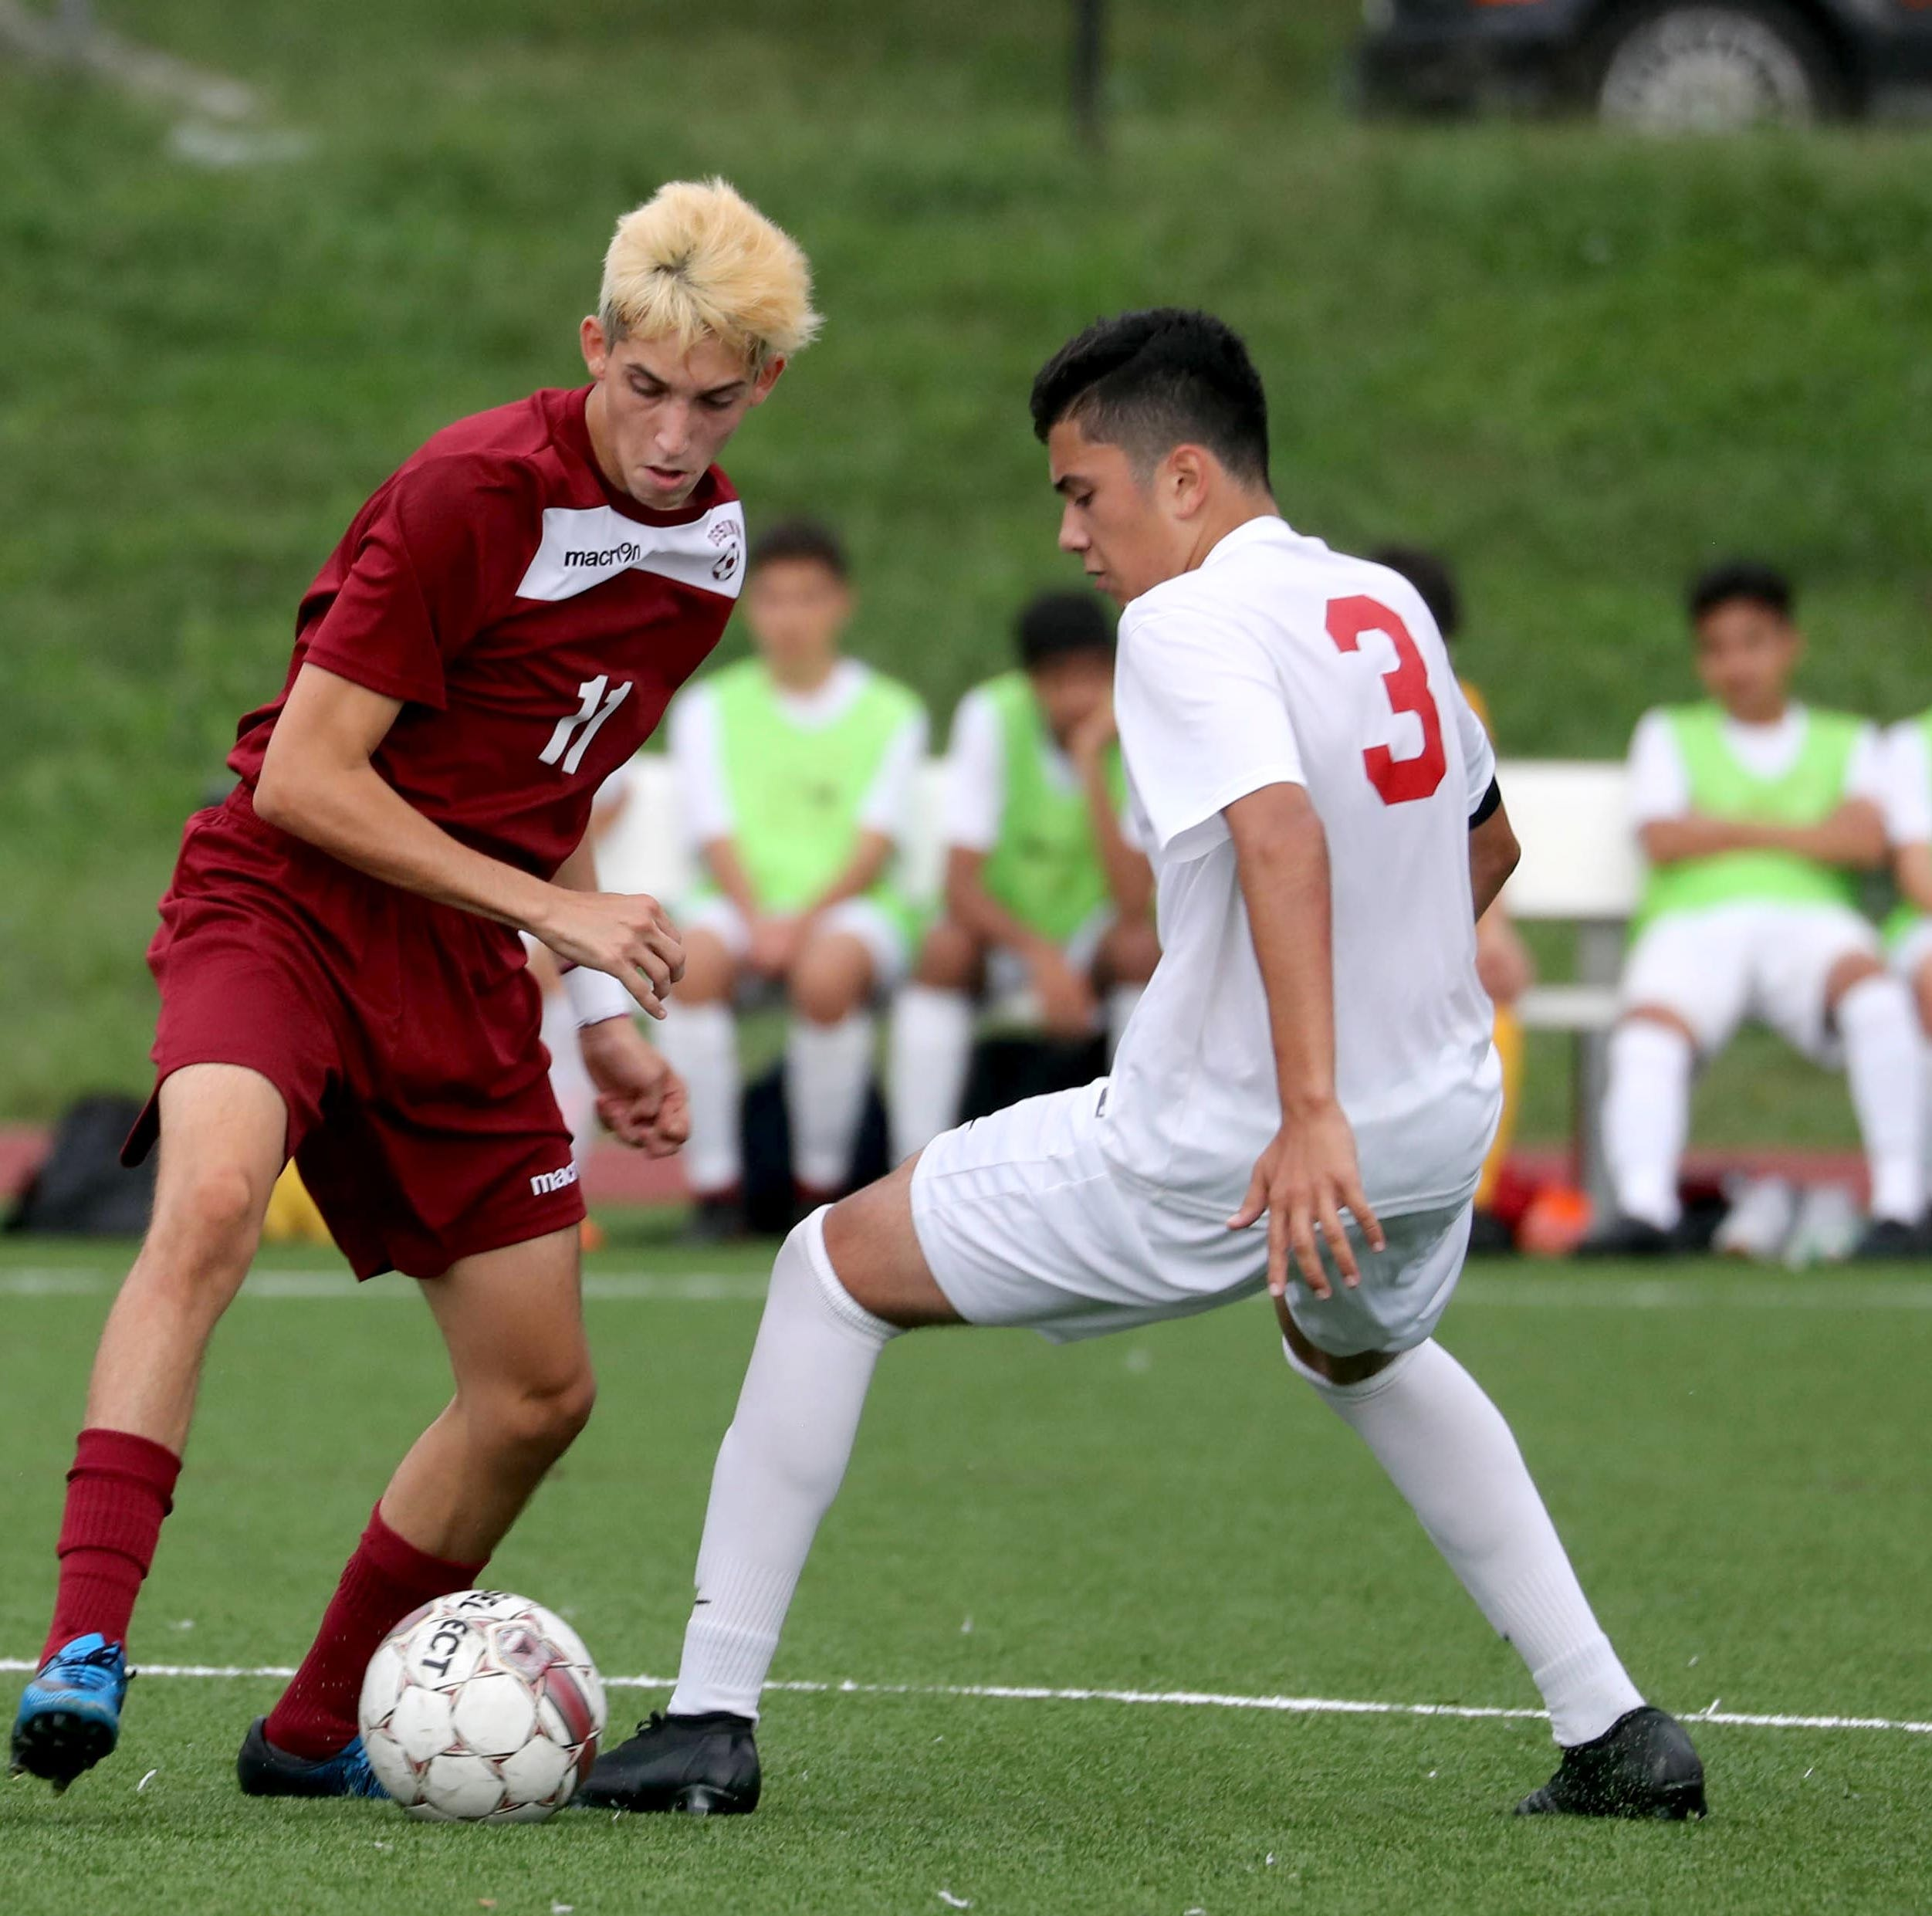 Boys soccer: Brackets for Section 1 tournament unveiled